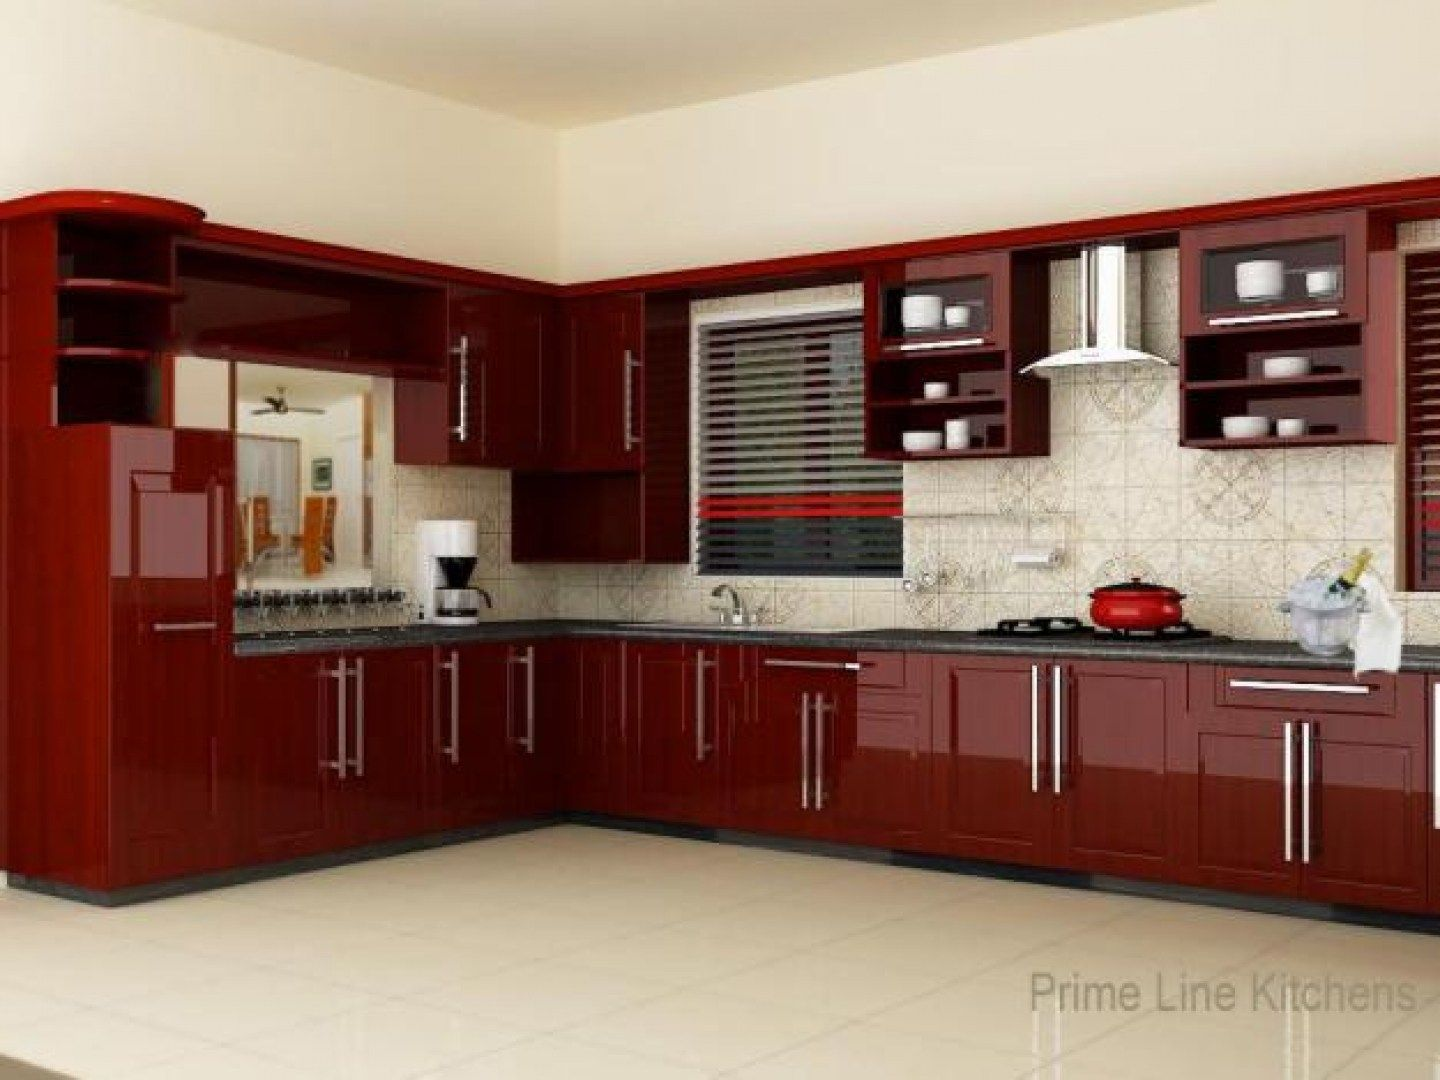 Kitchen design ideas kitchen woodwork designs hyderabad for Kitchen design tips